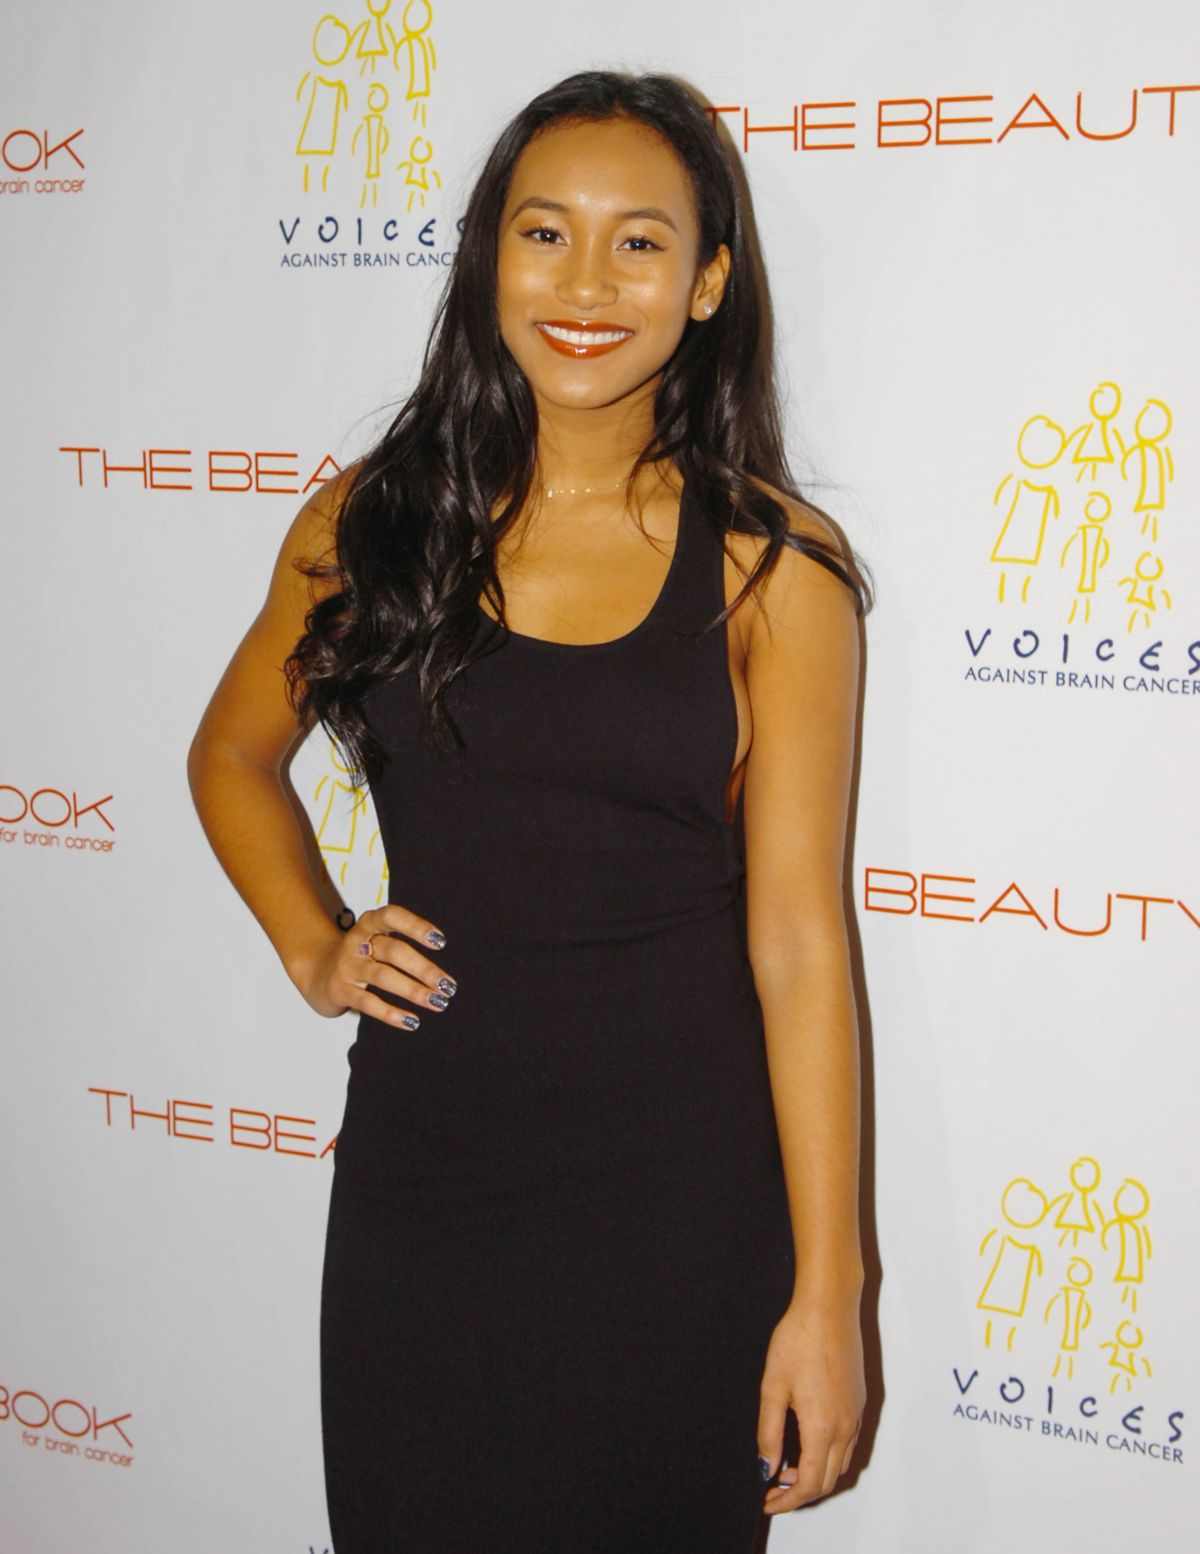 SYDNEY PARK at The Beauty Book for Brain Cancer Edition2 Launch Party in Los Angeles 12/03/2015